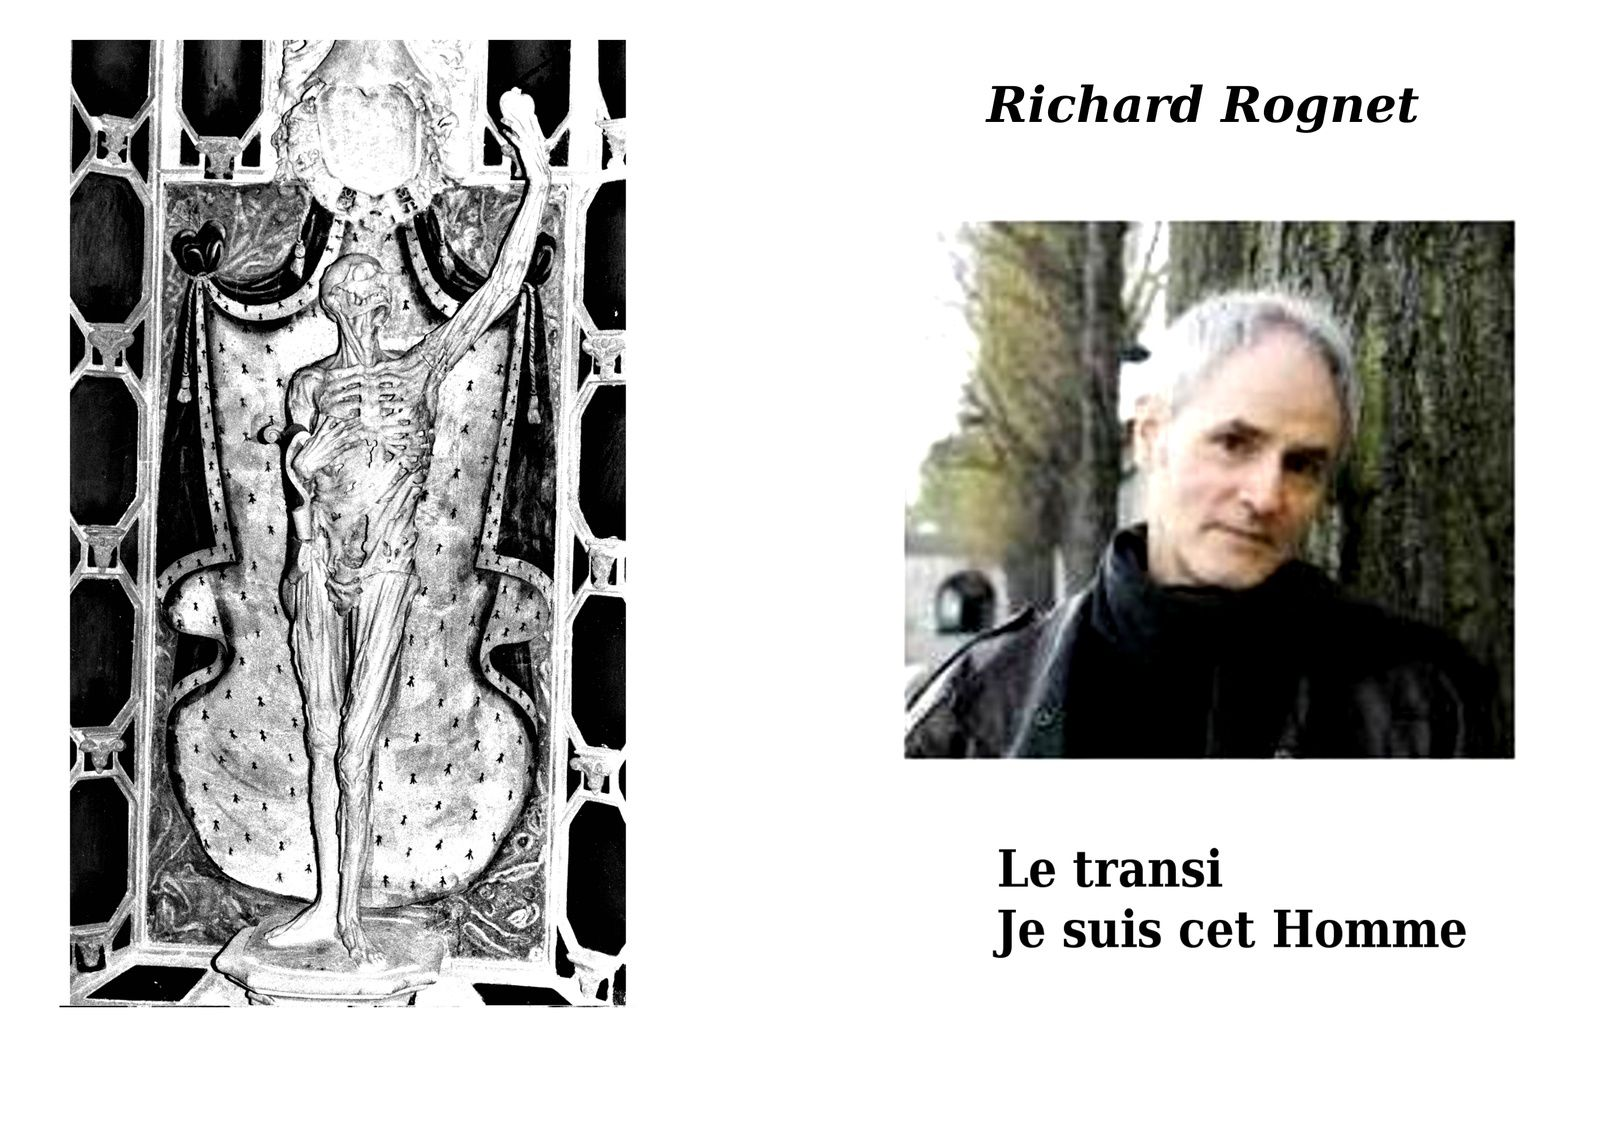 Je suis cet homme   de Richard Rognet - collection Da Capo - format 14 x 20 cm - dos carré-collé - 92 pages - ISBN : 9782952154468 - prix : 15,00euros-